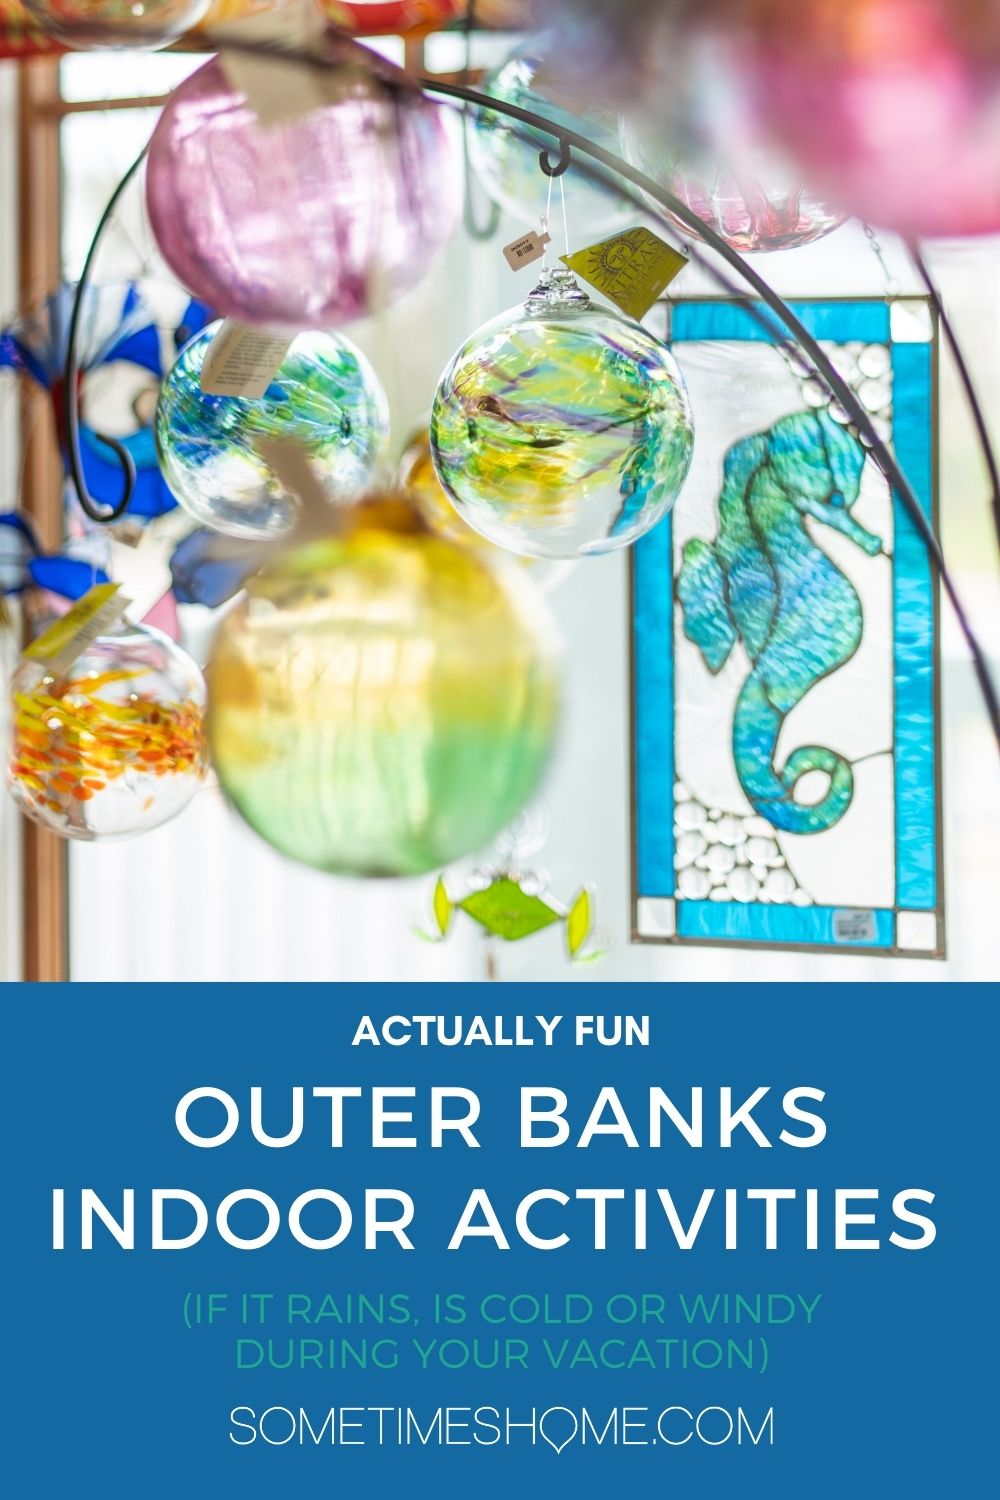 Pinterest image for Actually fun Outer Banks Indoor Activities in NC if it rains, is windy or cold during your vacation.